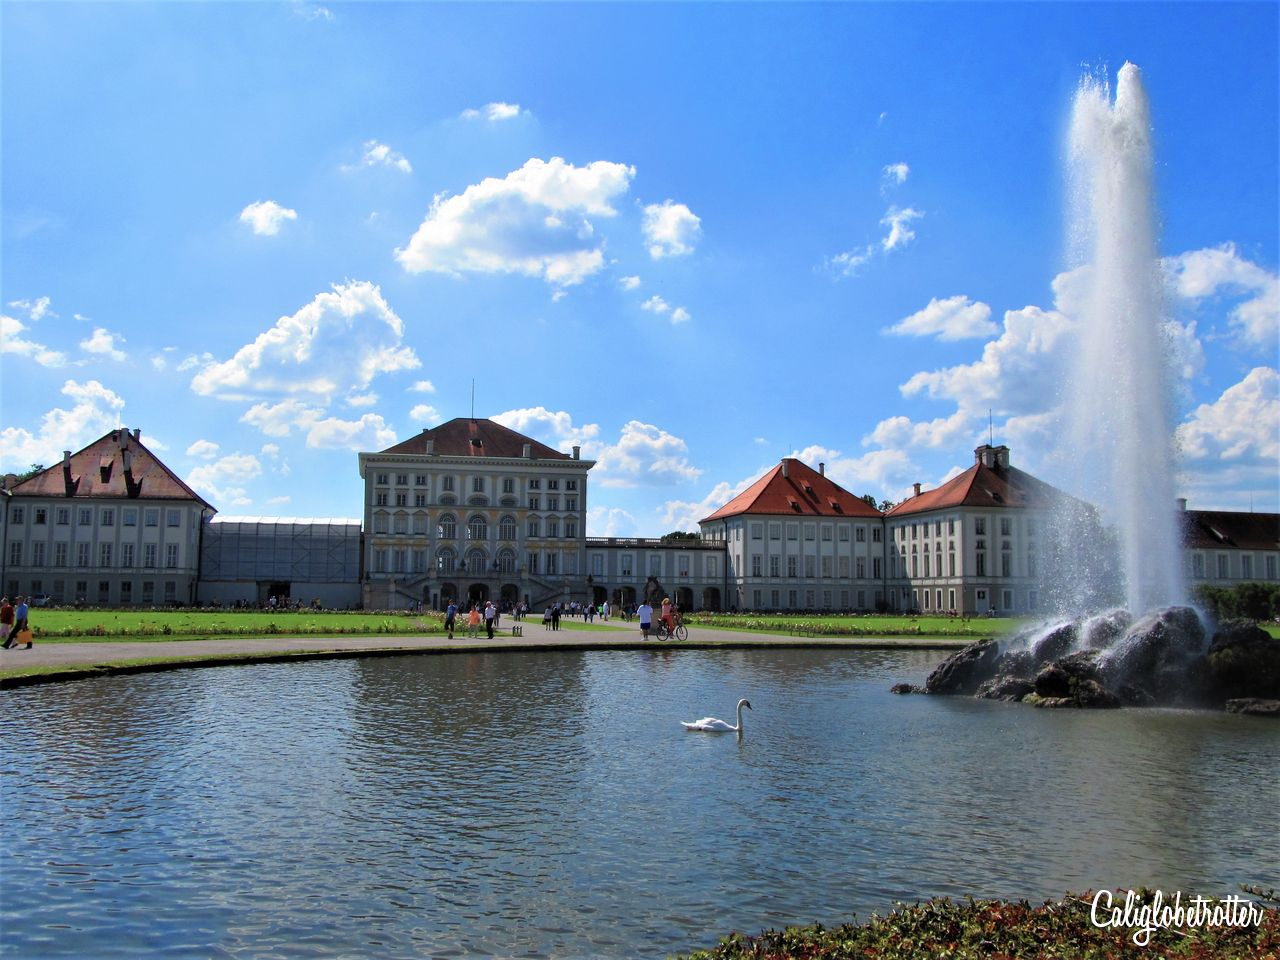 Schloss Nymphenburg | What's the Difference Between a Burg and a Schloss? | Castles vs Burg | Castles in Germany | Palaces in Germany | Fortresses in Germany | Best Castles in Germany | Castles in Bavaria | Bavarian Castles | German Castles | Schloss oder Burg? | Castle or Fortress | Palace or Castle | Germany's Best Castles | Schloss Neuschwanstein | Linderhof Palace | Burg Hohenzollern - California Globetrotter